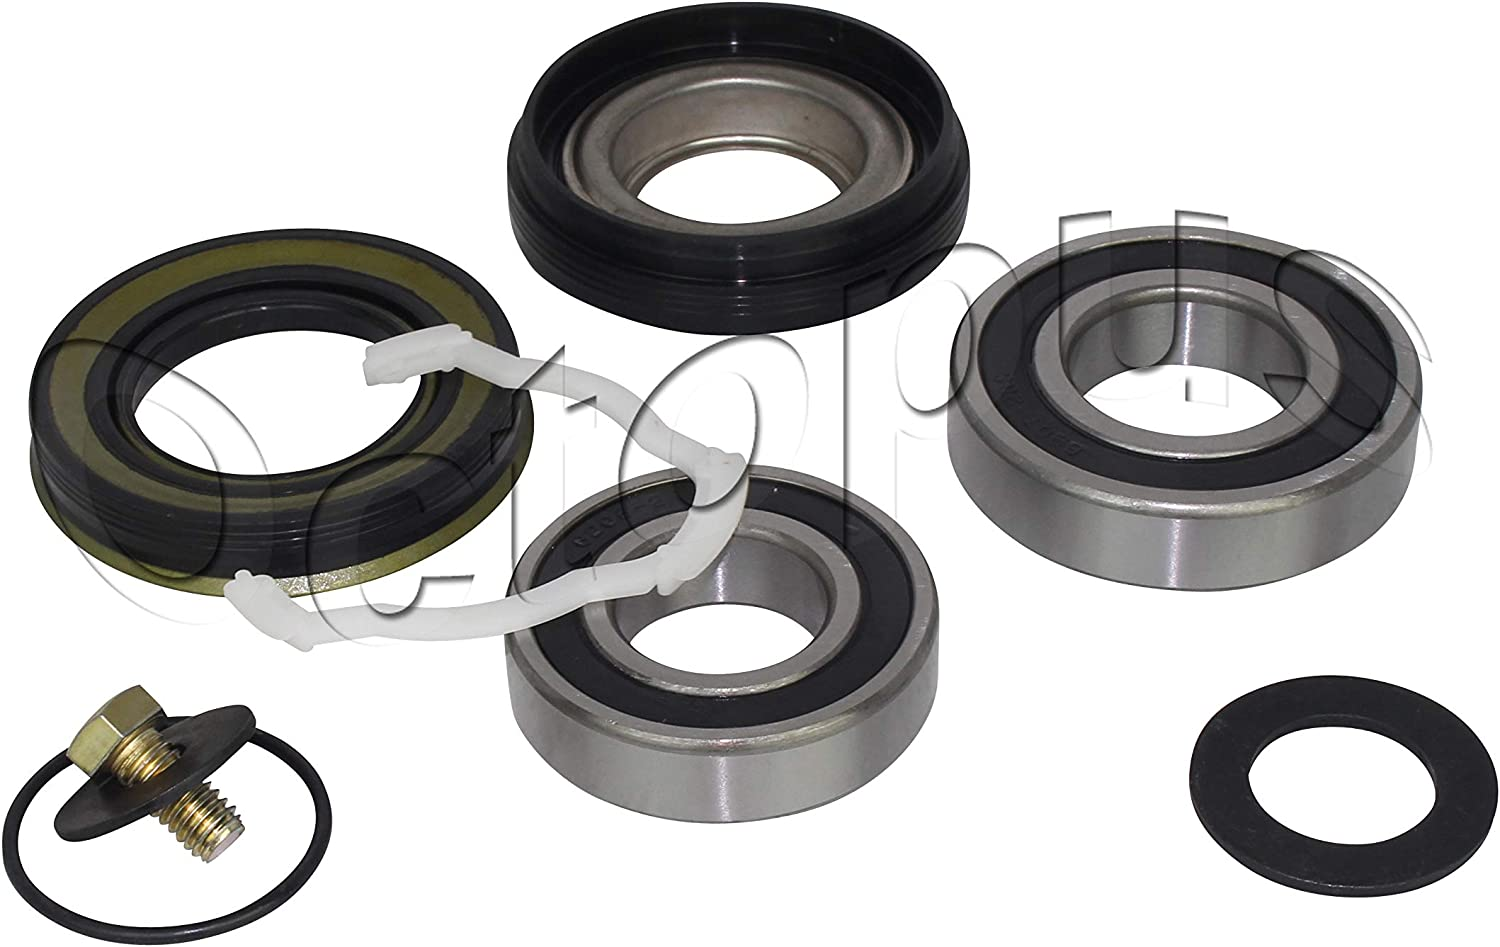 Washer Bearing Kit for Neptune Maytag 22004465 AP4028180 1119942 PS2021871 22002154